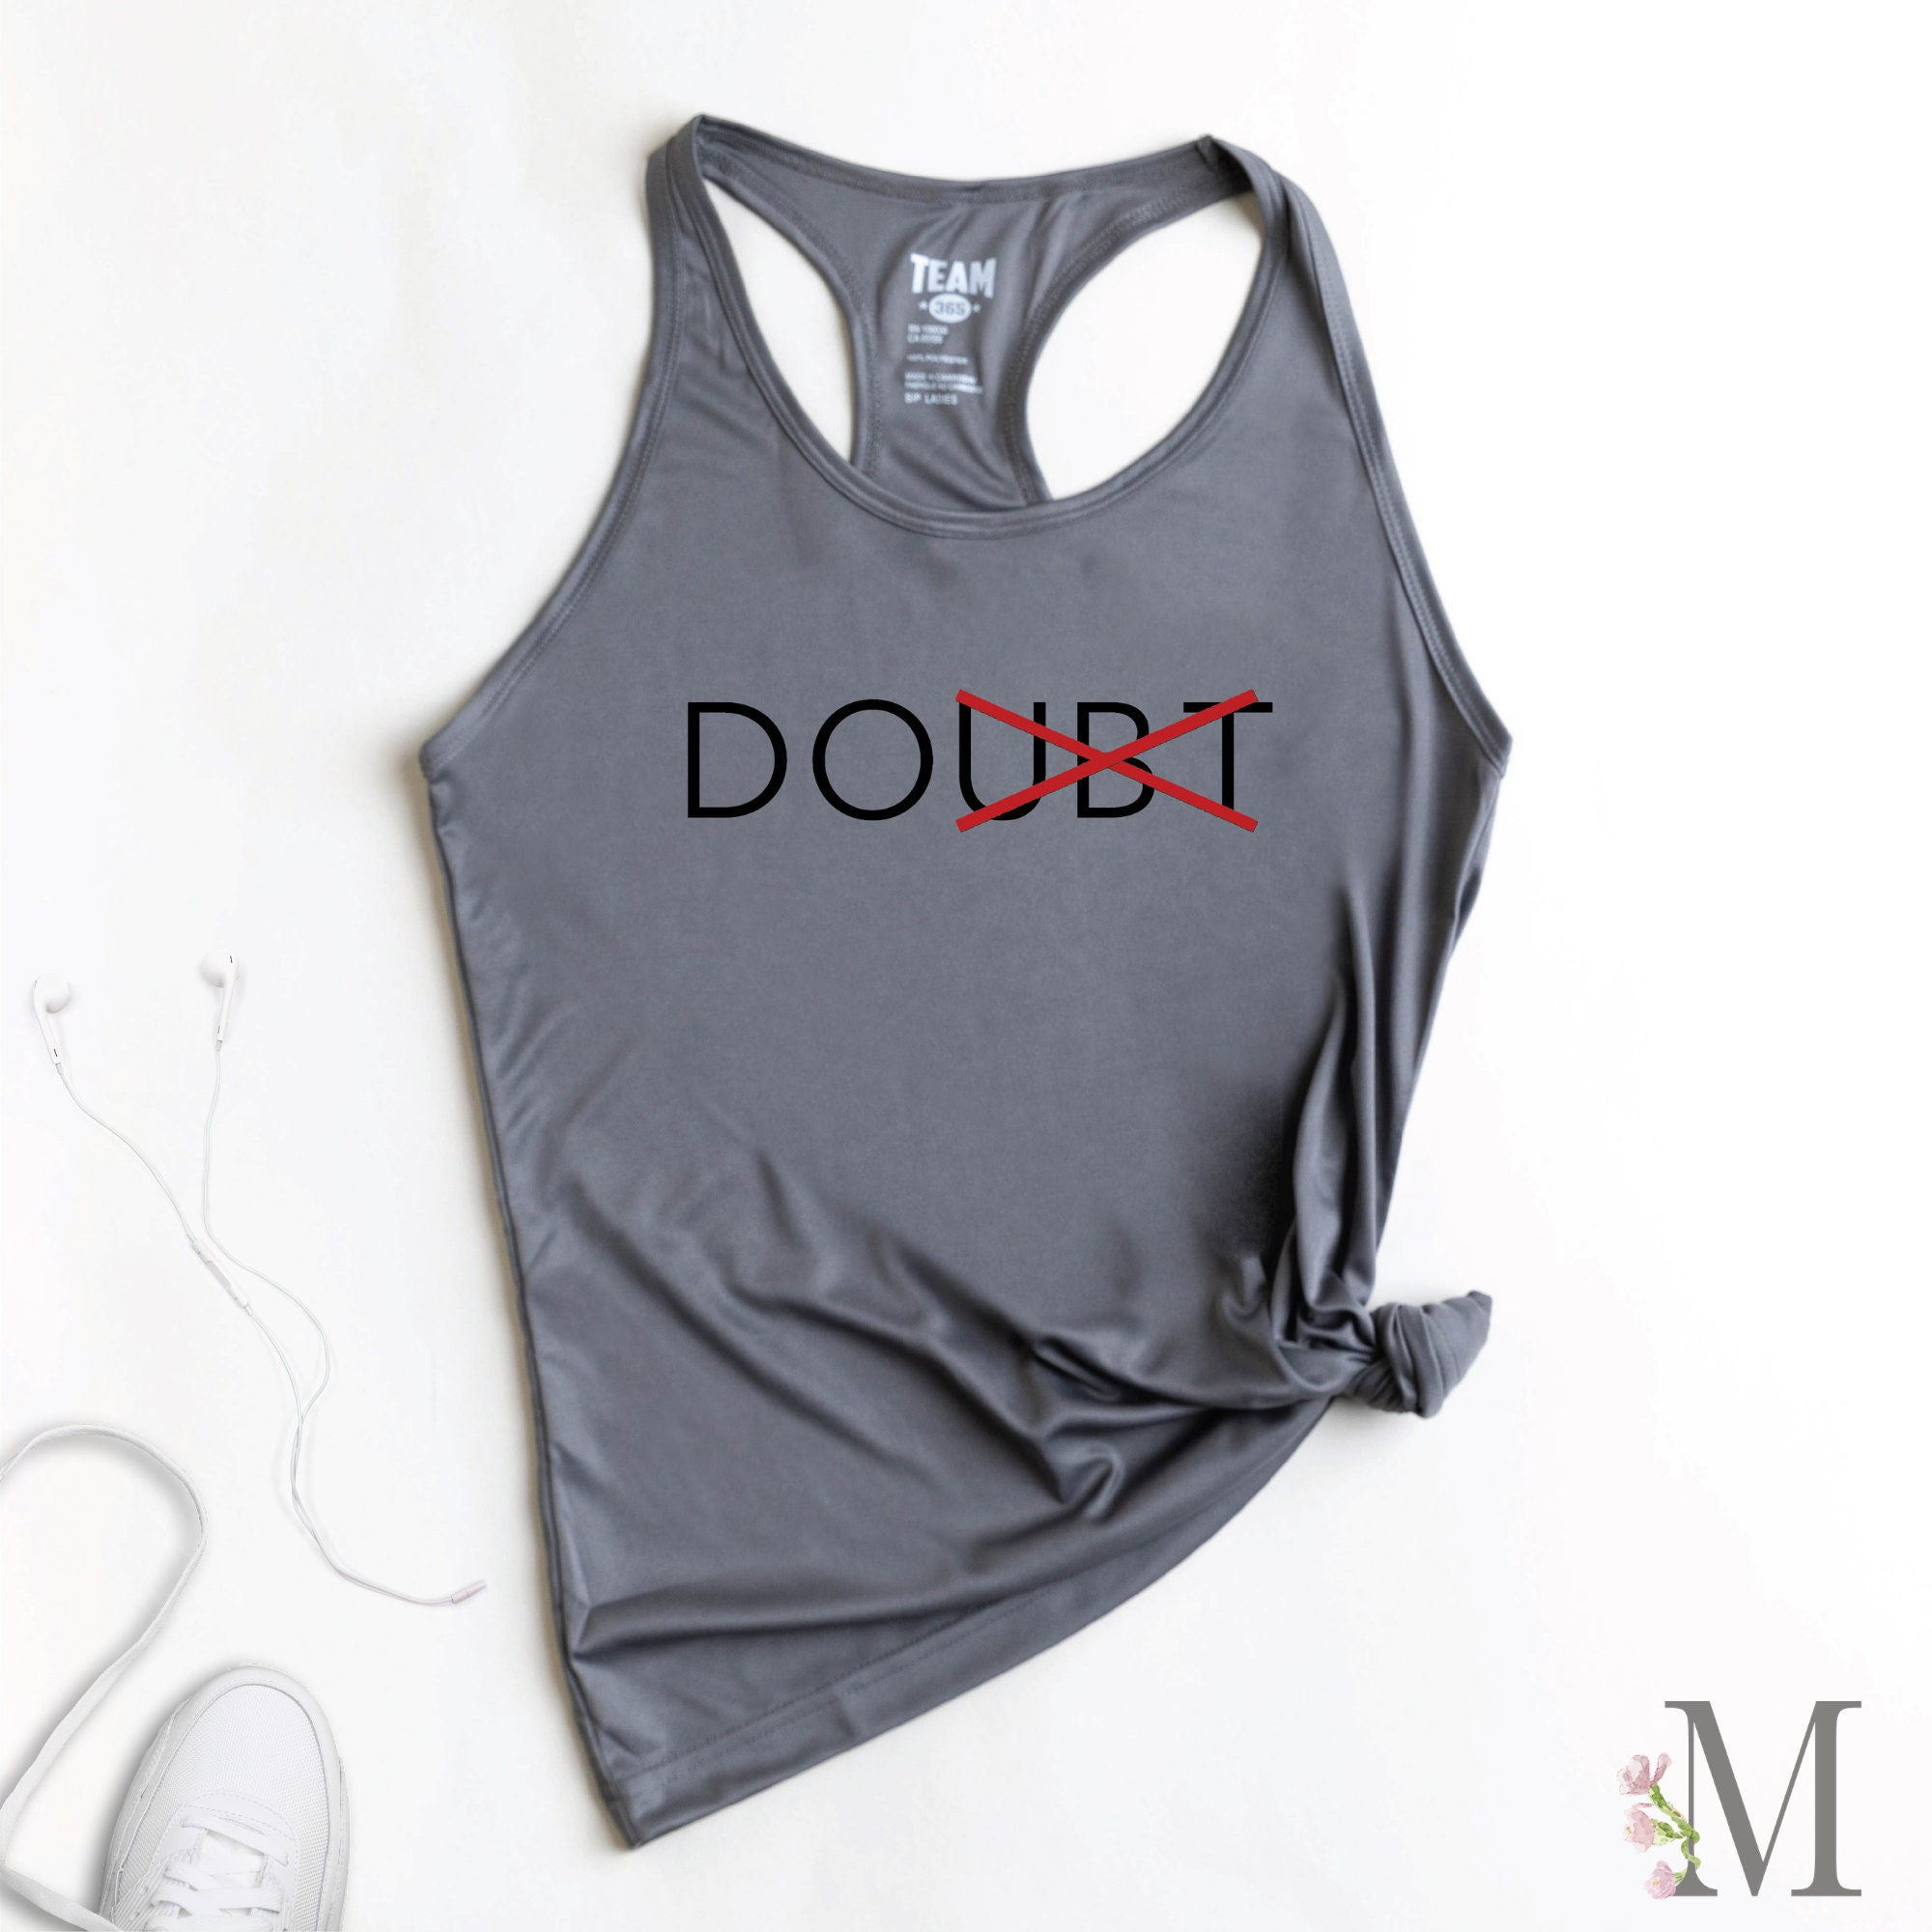 Inspirational Quotes Women/'s Racerback Tank Top No Doubt